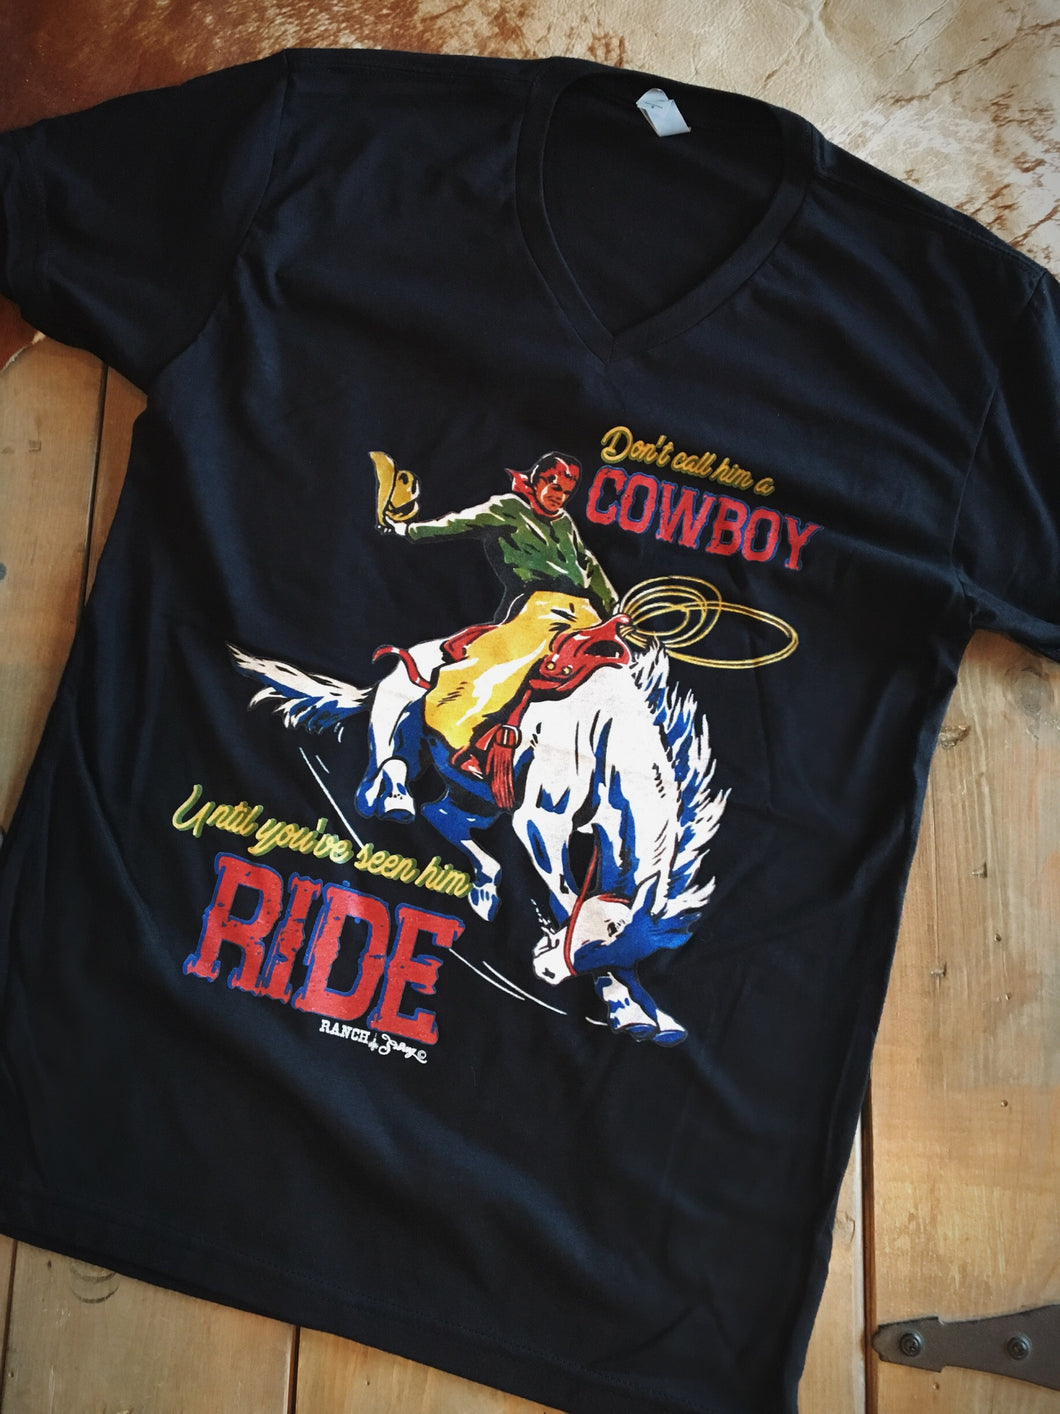 Don't Call Him A Cowboy Tee